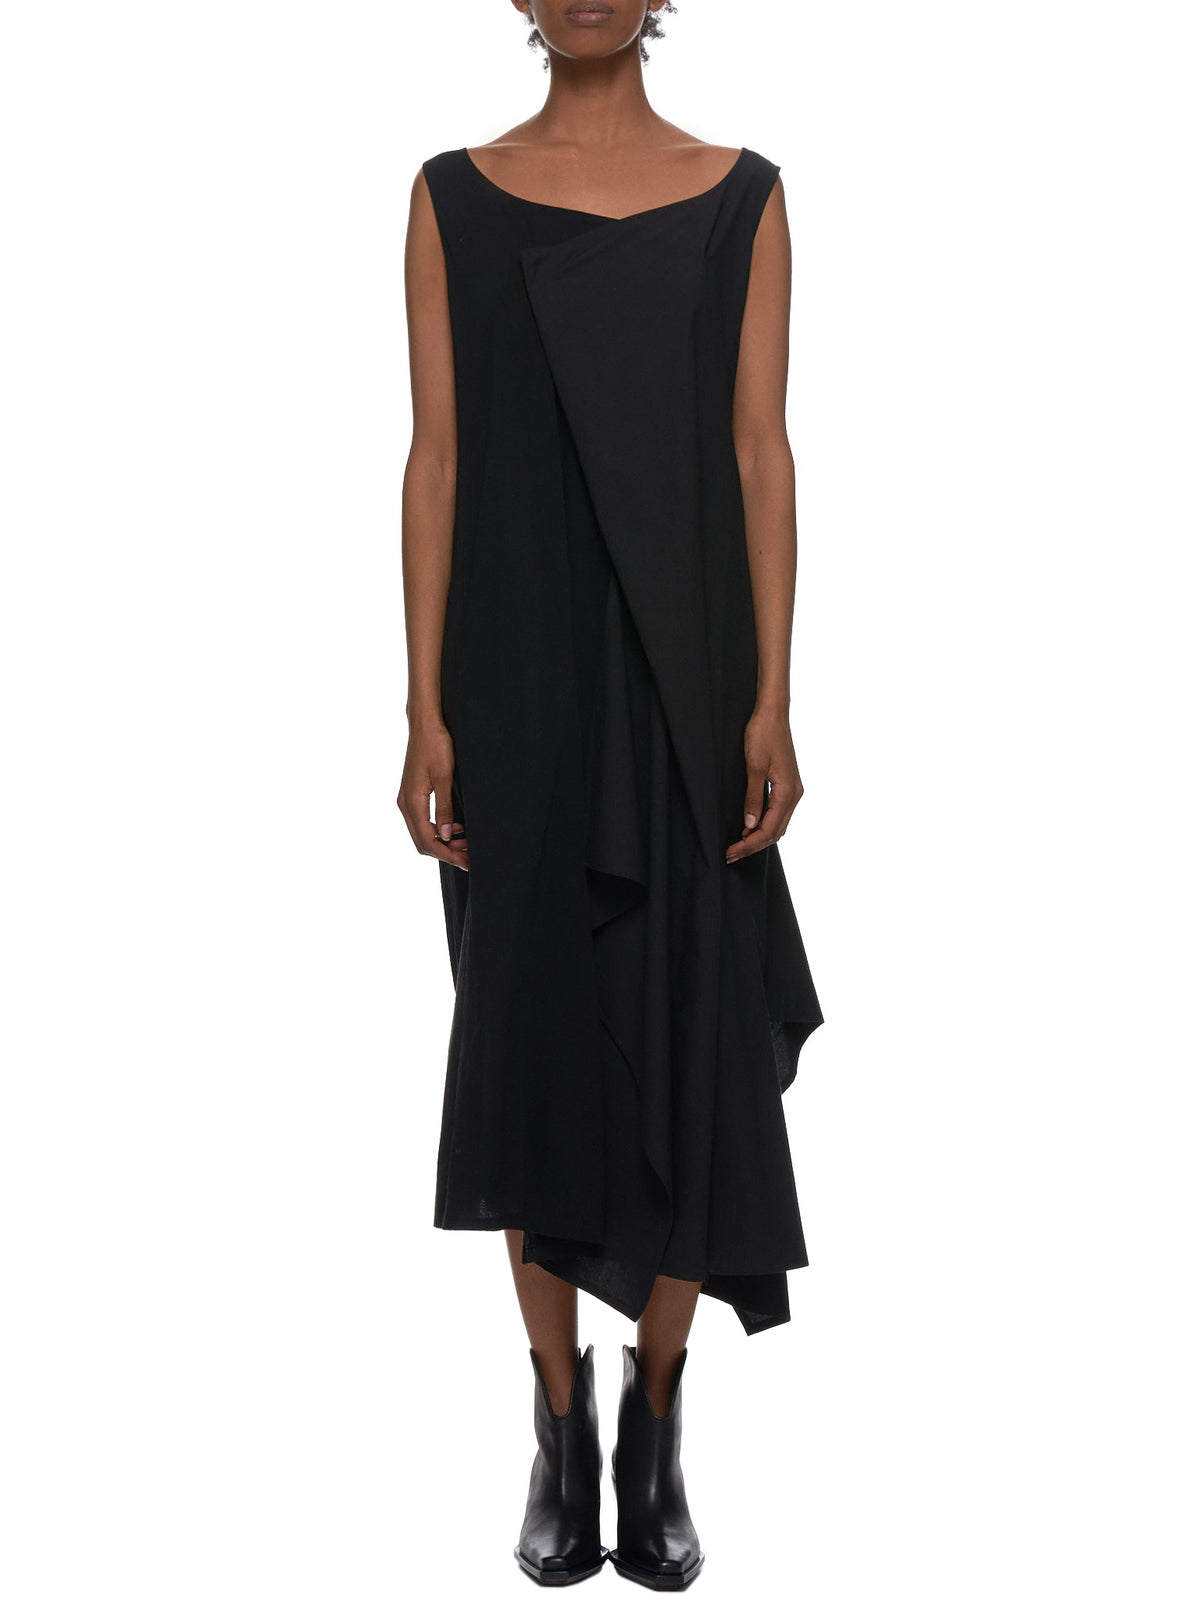 Asymmetrical Drape Dress (NH-D10-812-BLACK)